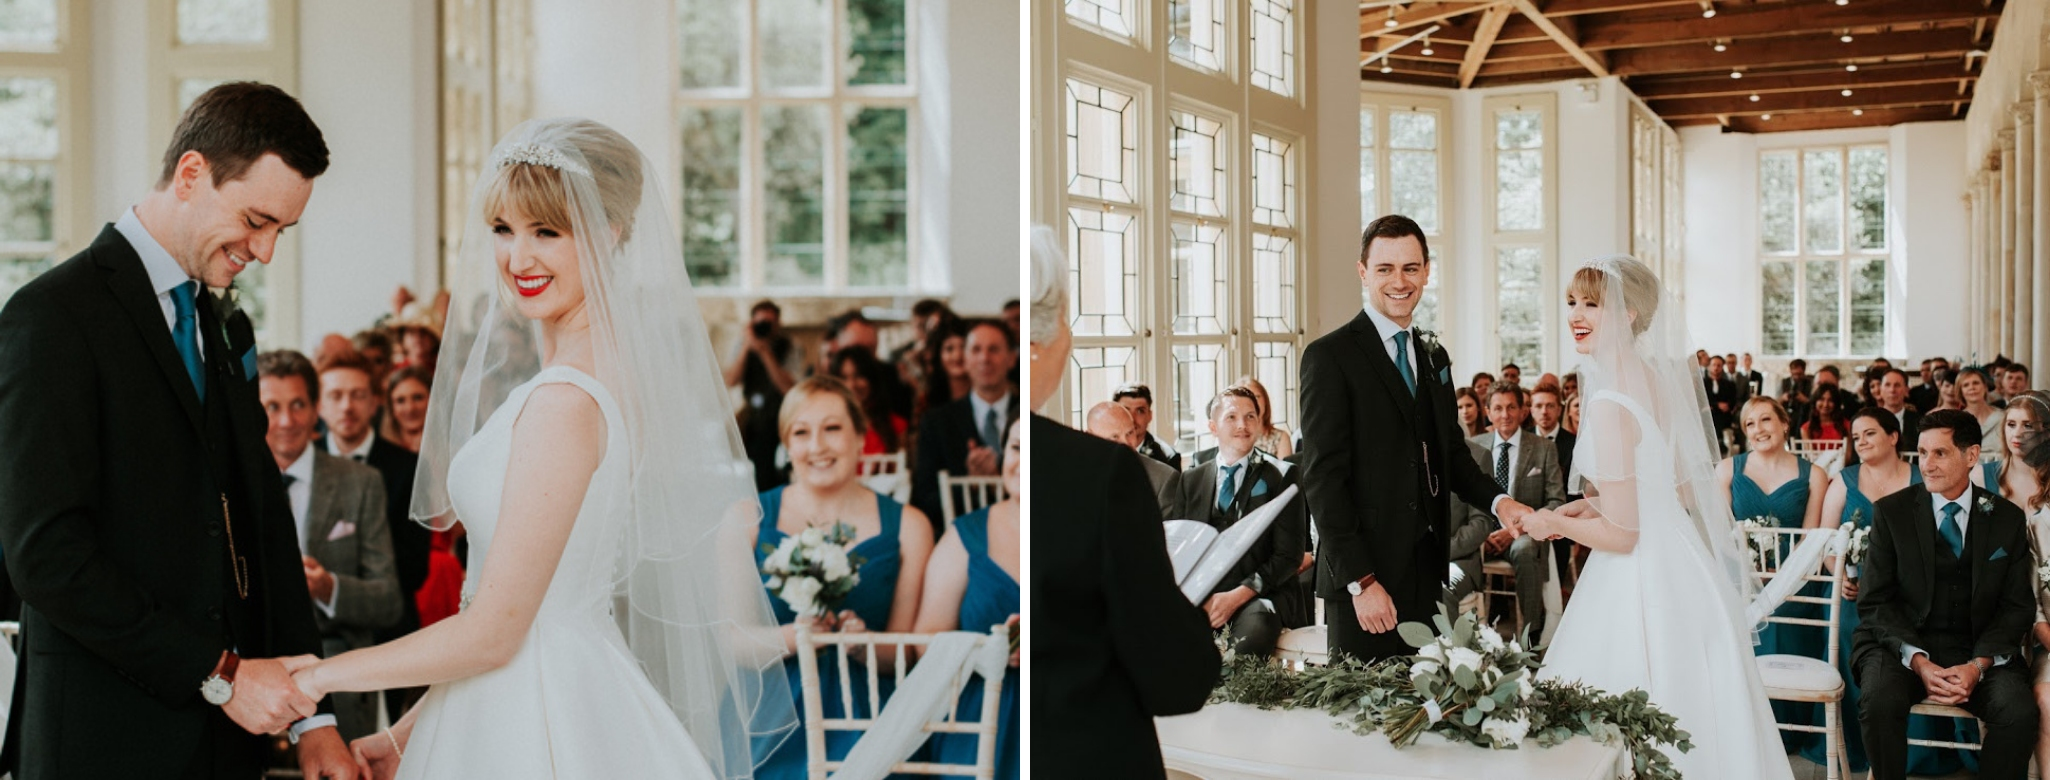 Bride and Groom smiling and laughing during their wedding ceremony in the Wintergarden